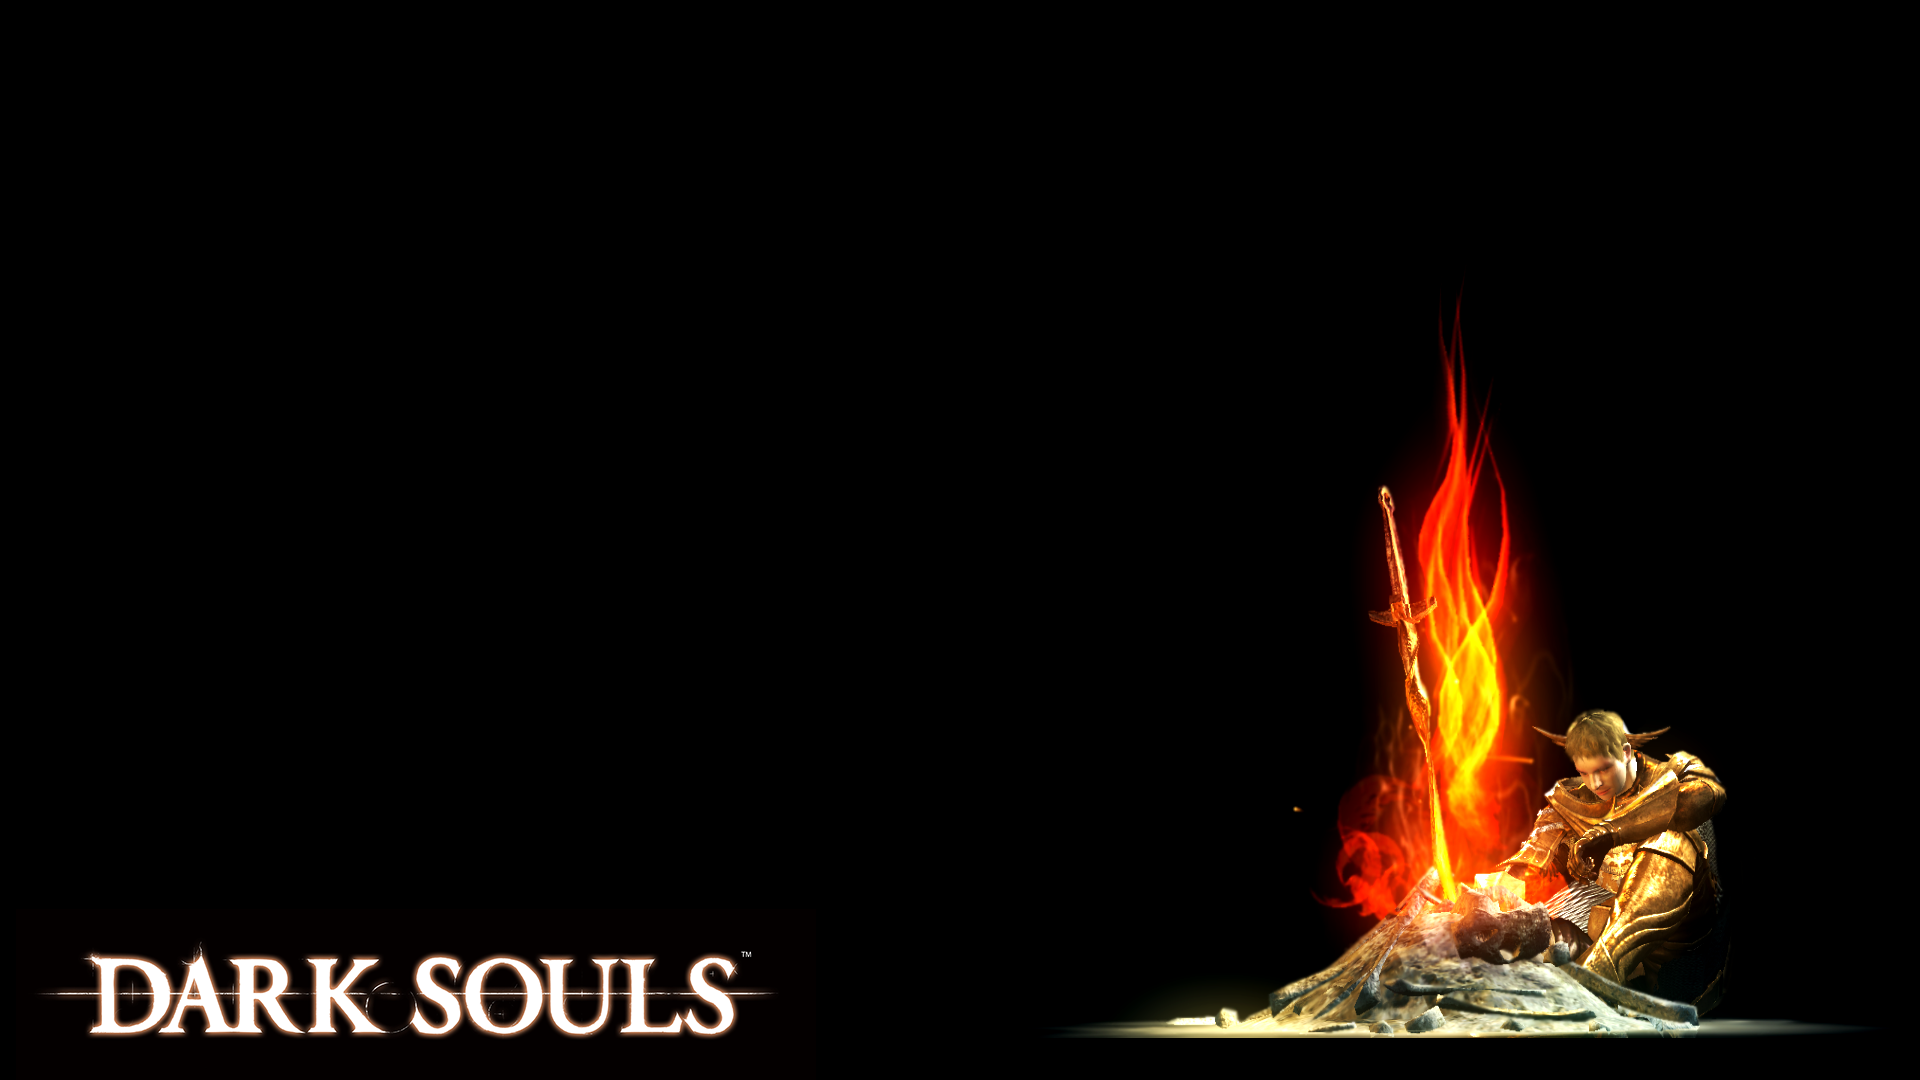 Wallpaper At Dark Souls Nexus Mods And Community